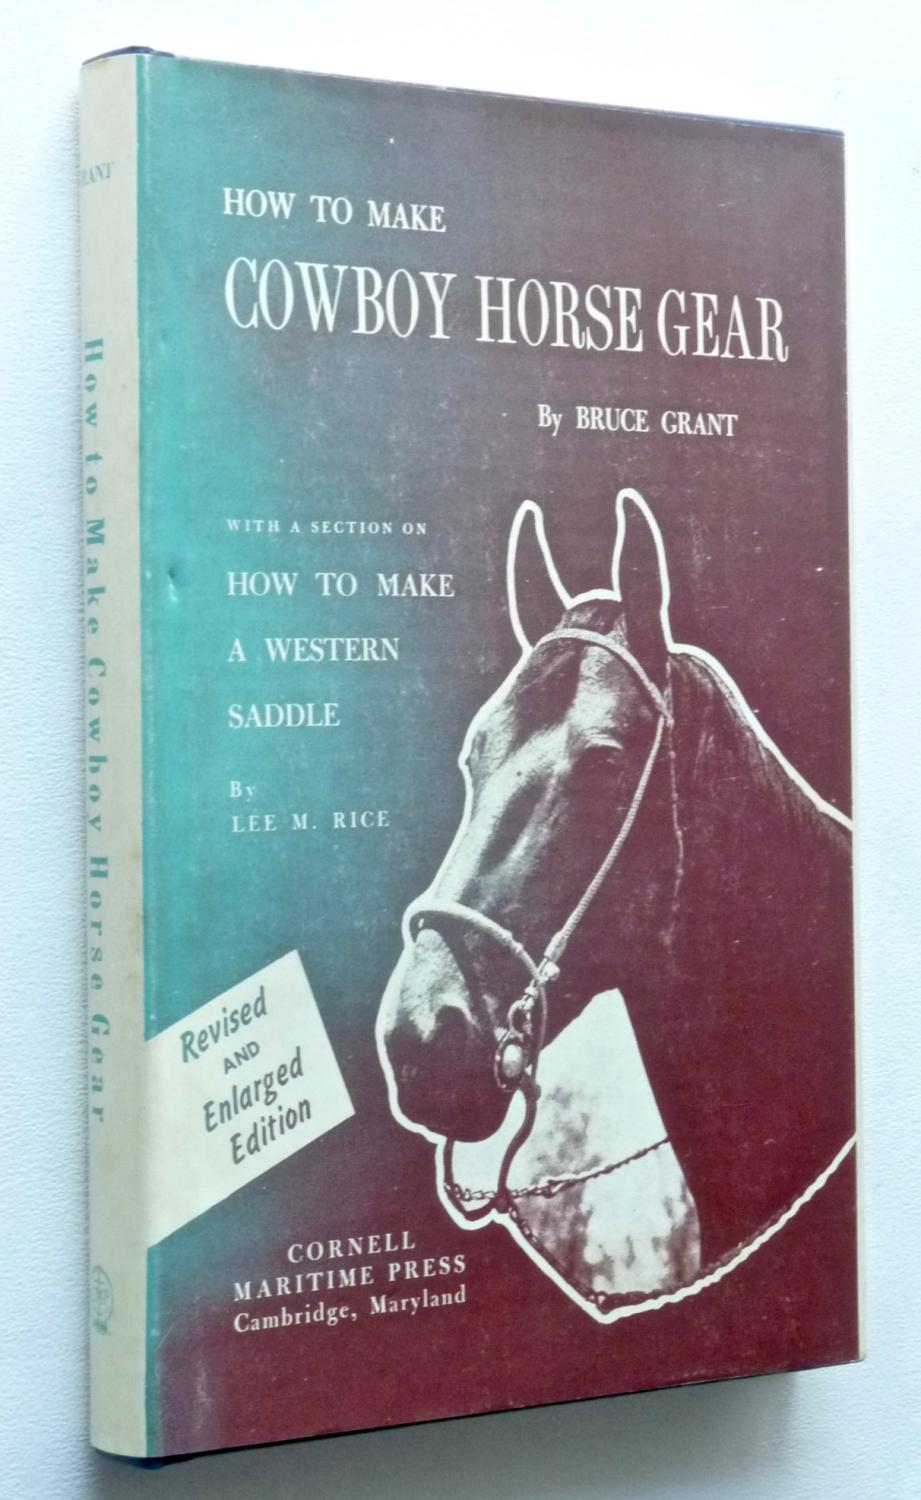 How To Make Cowboy Horse Gear Book